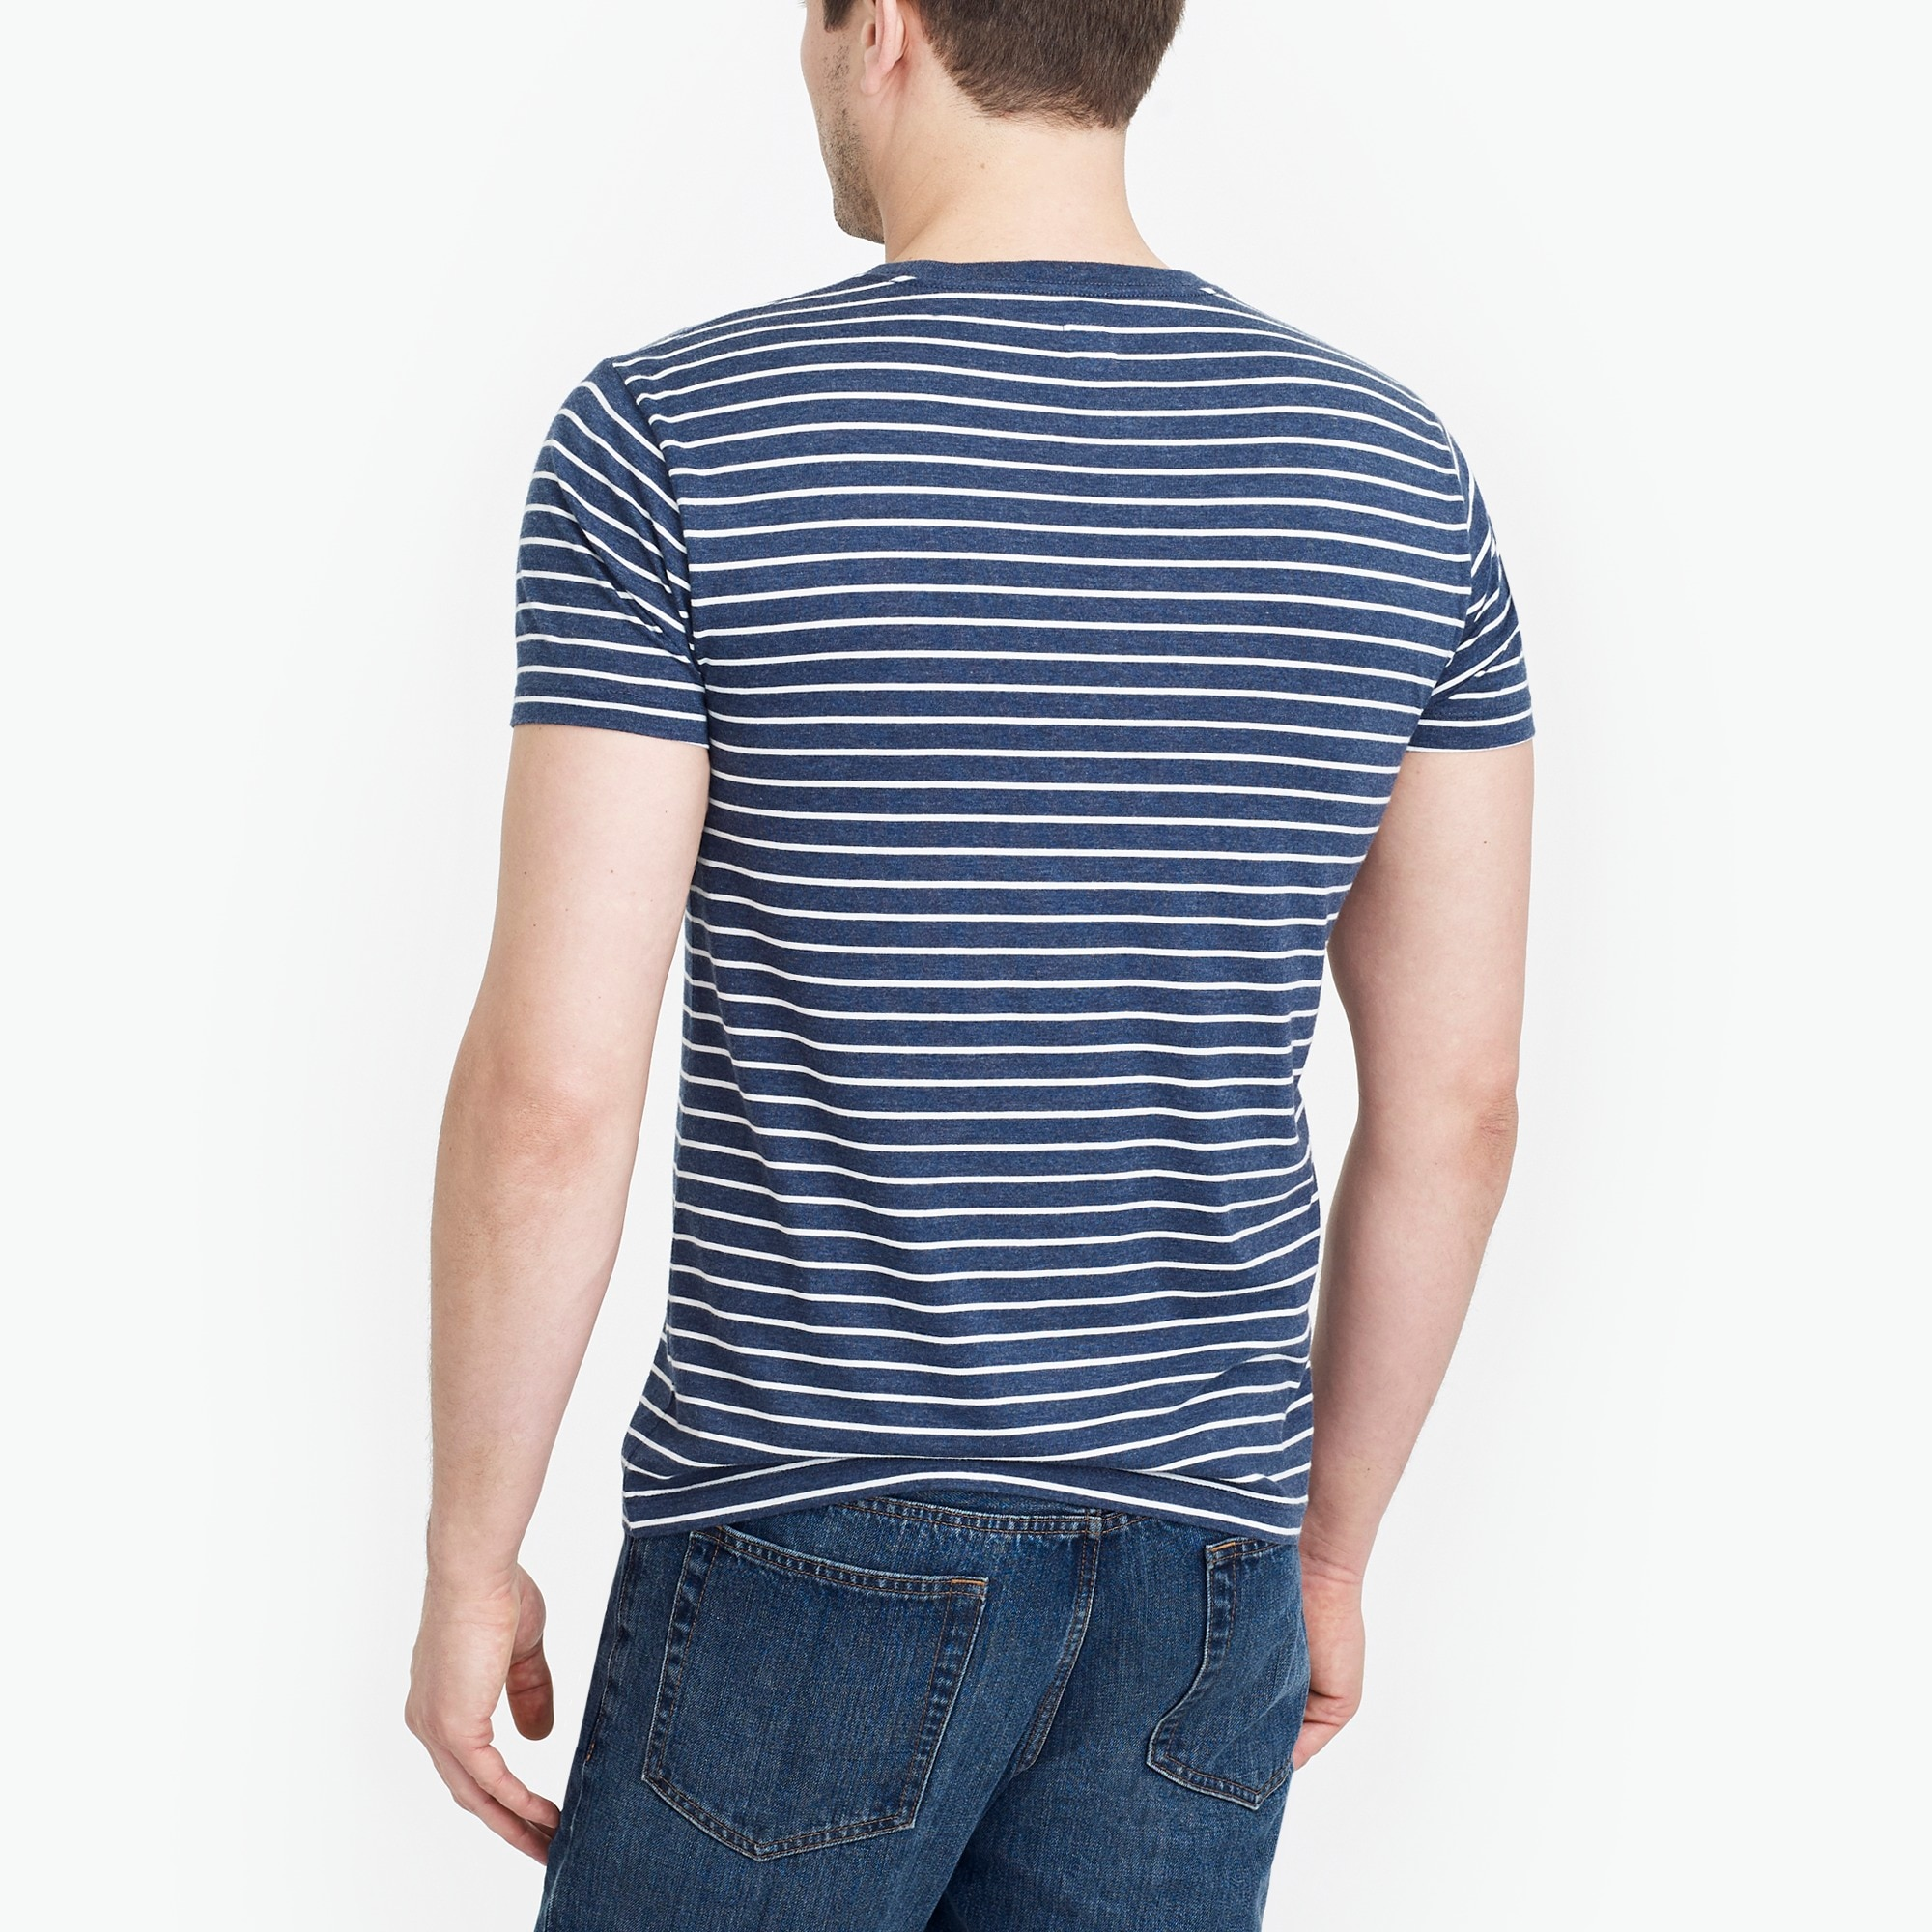 Image 3 for Tall slim Broken-in striped pocket T-shirt